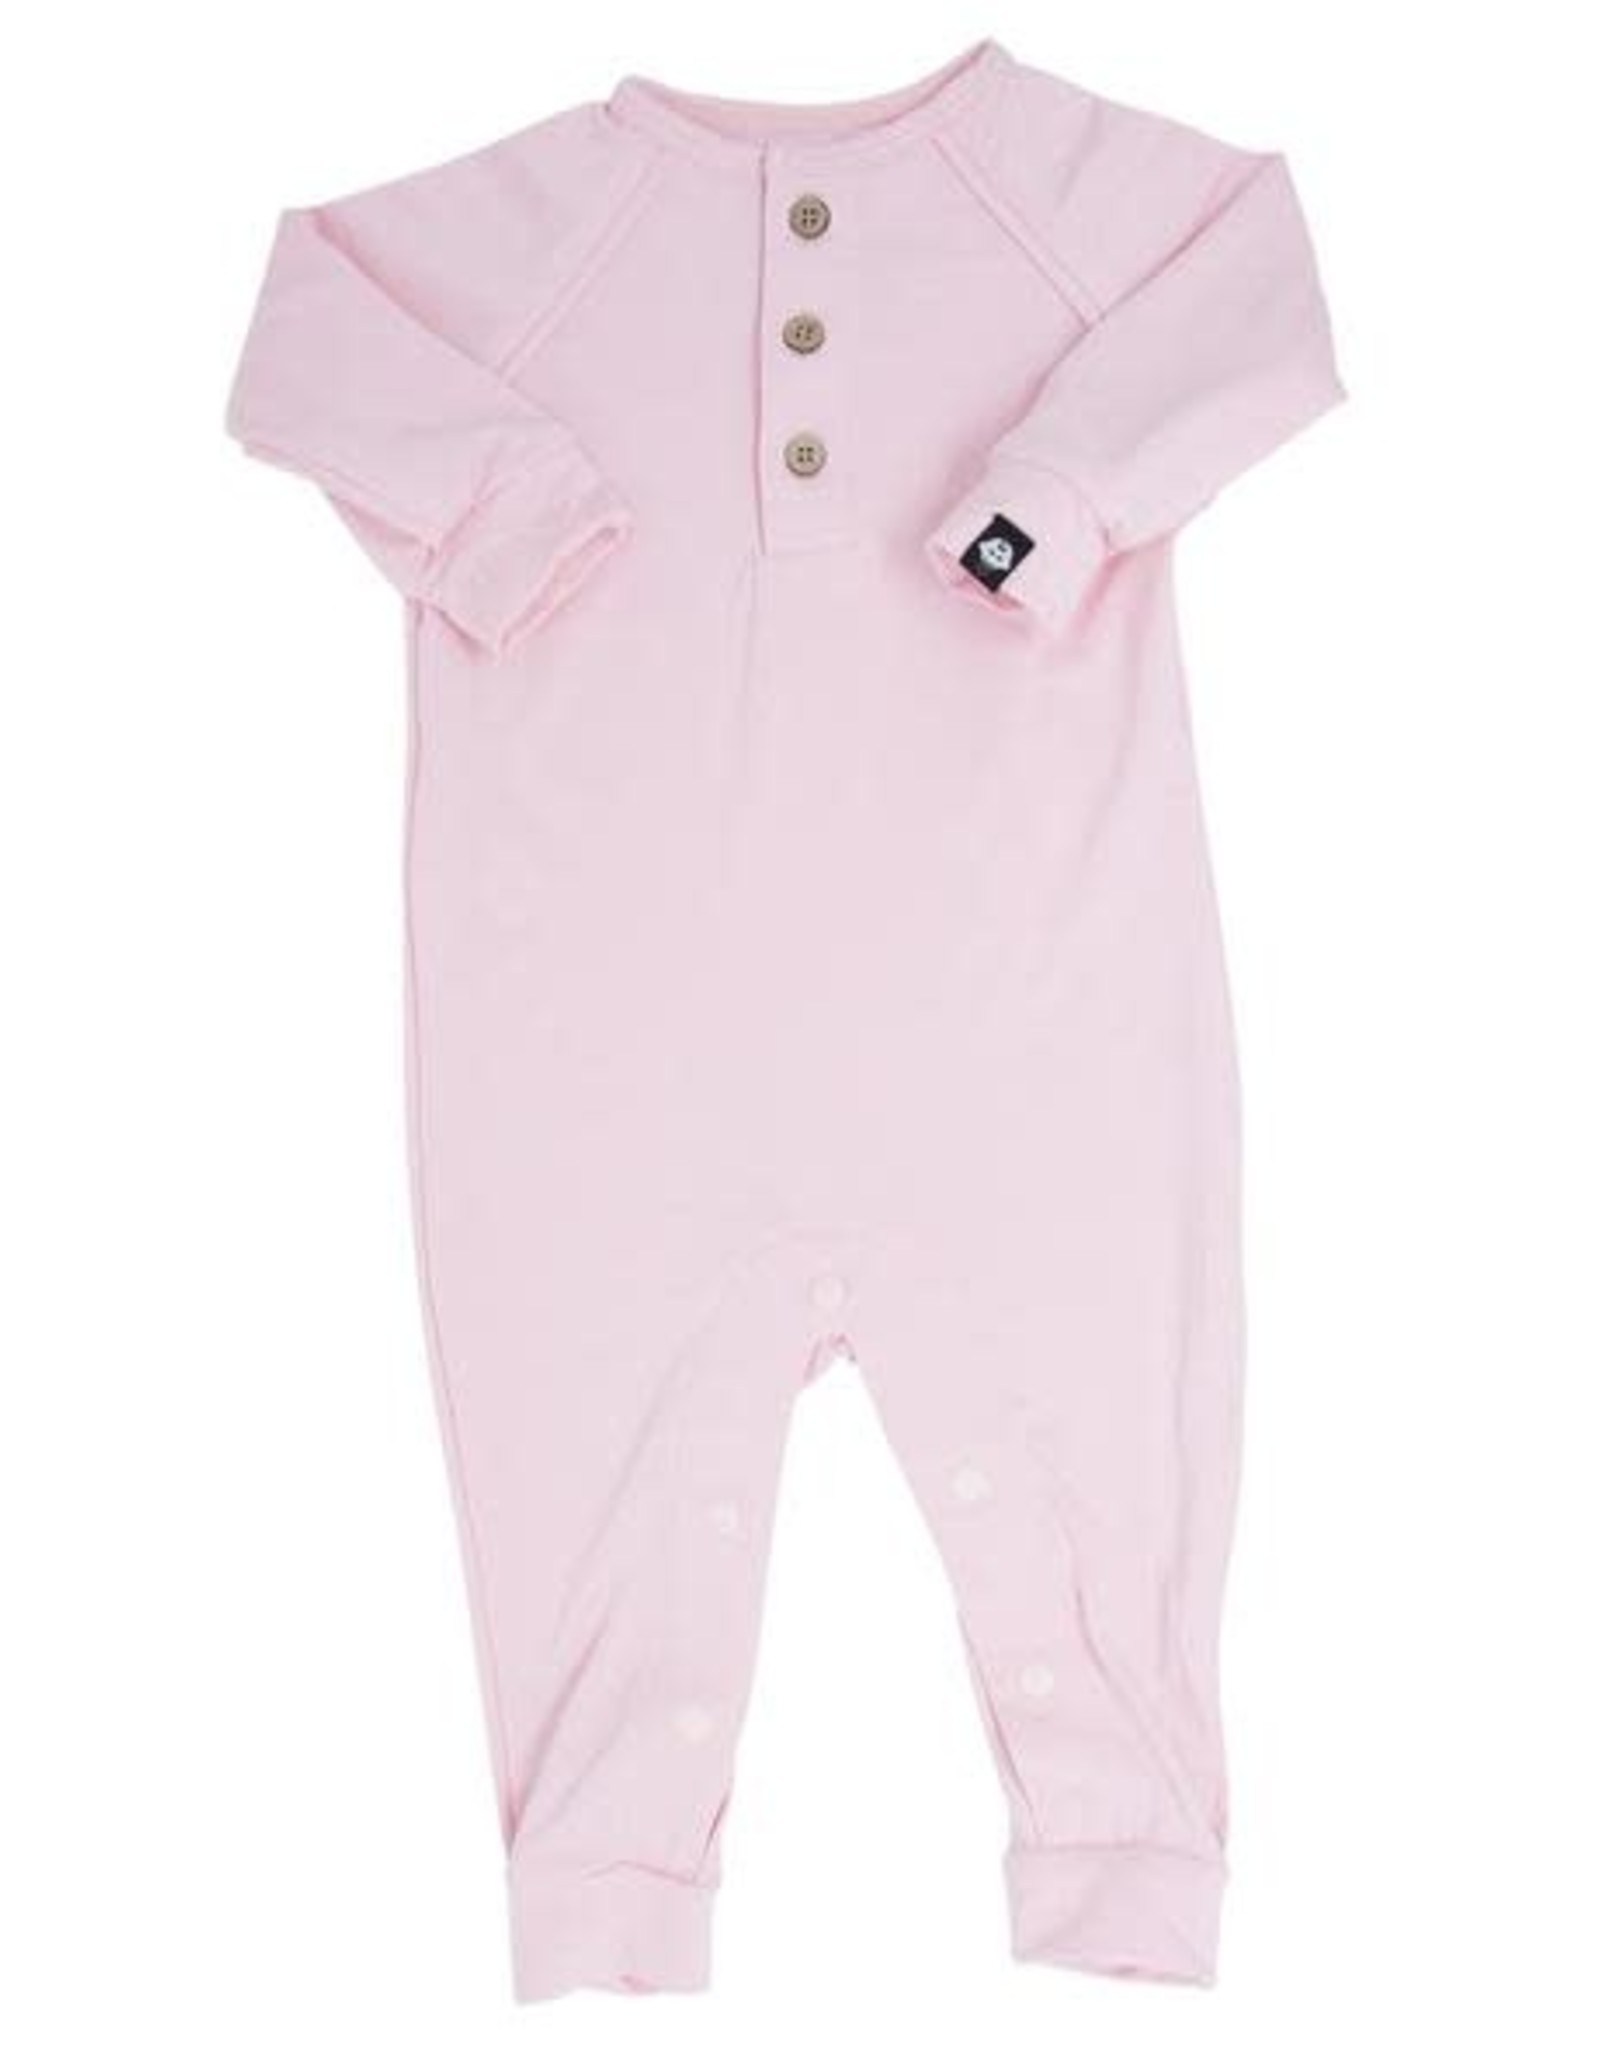 Sweet Bamboo Long Romper c/ Front Placket - Baby Pink Solid